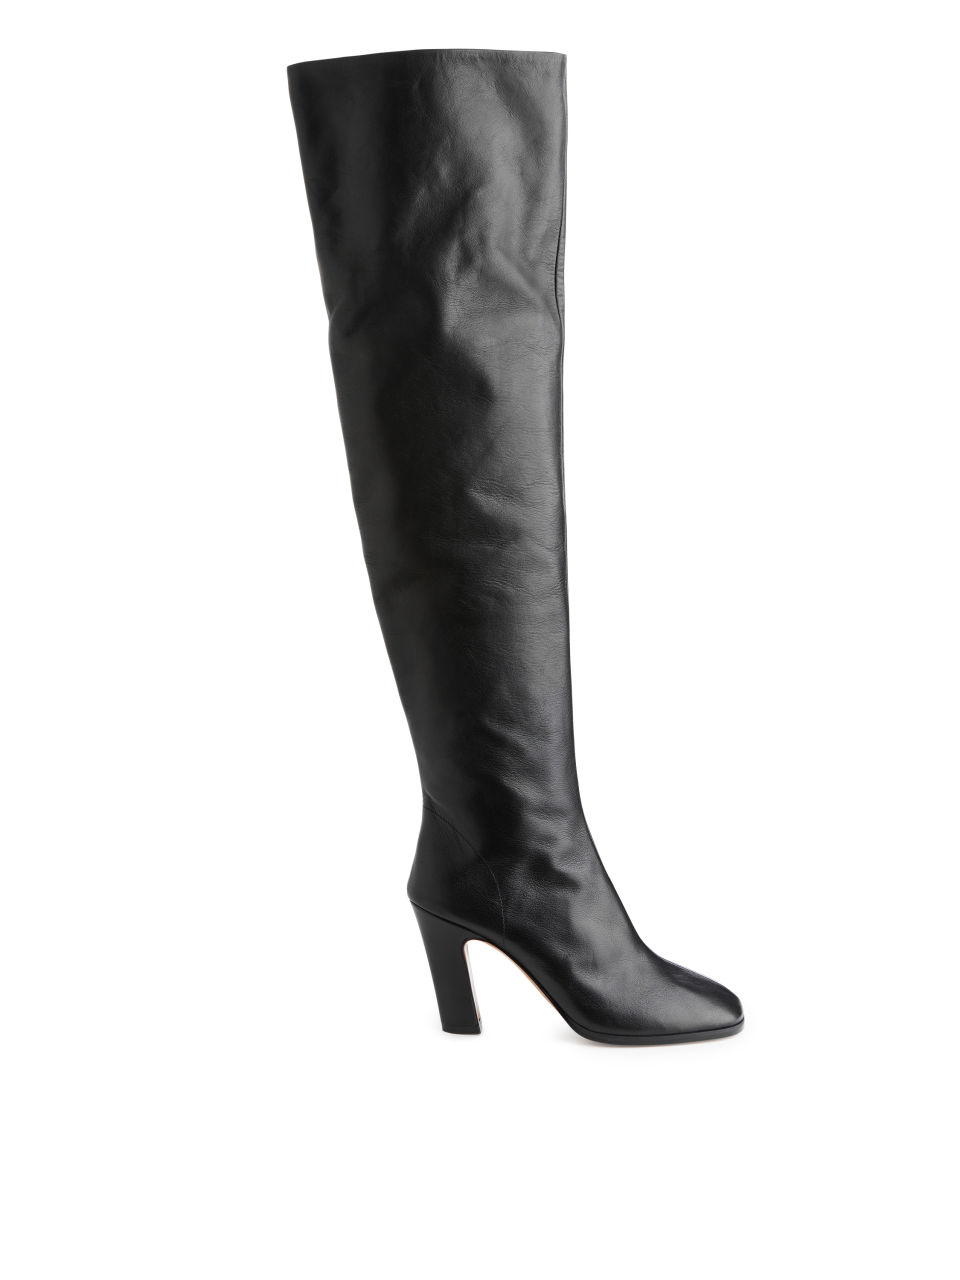 Leather Over Knee Boots - Black